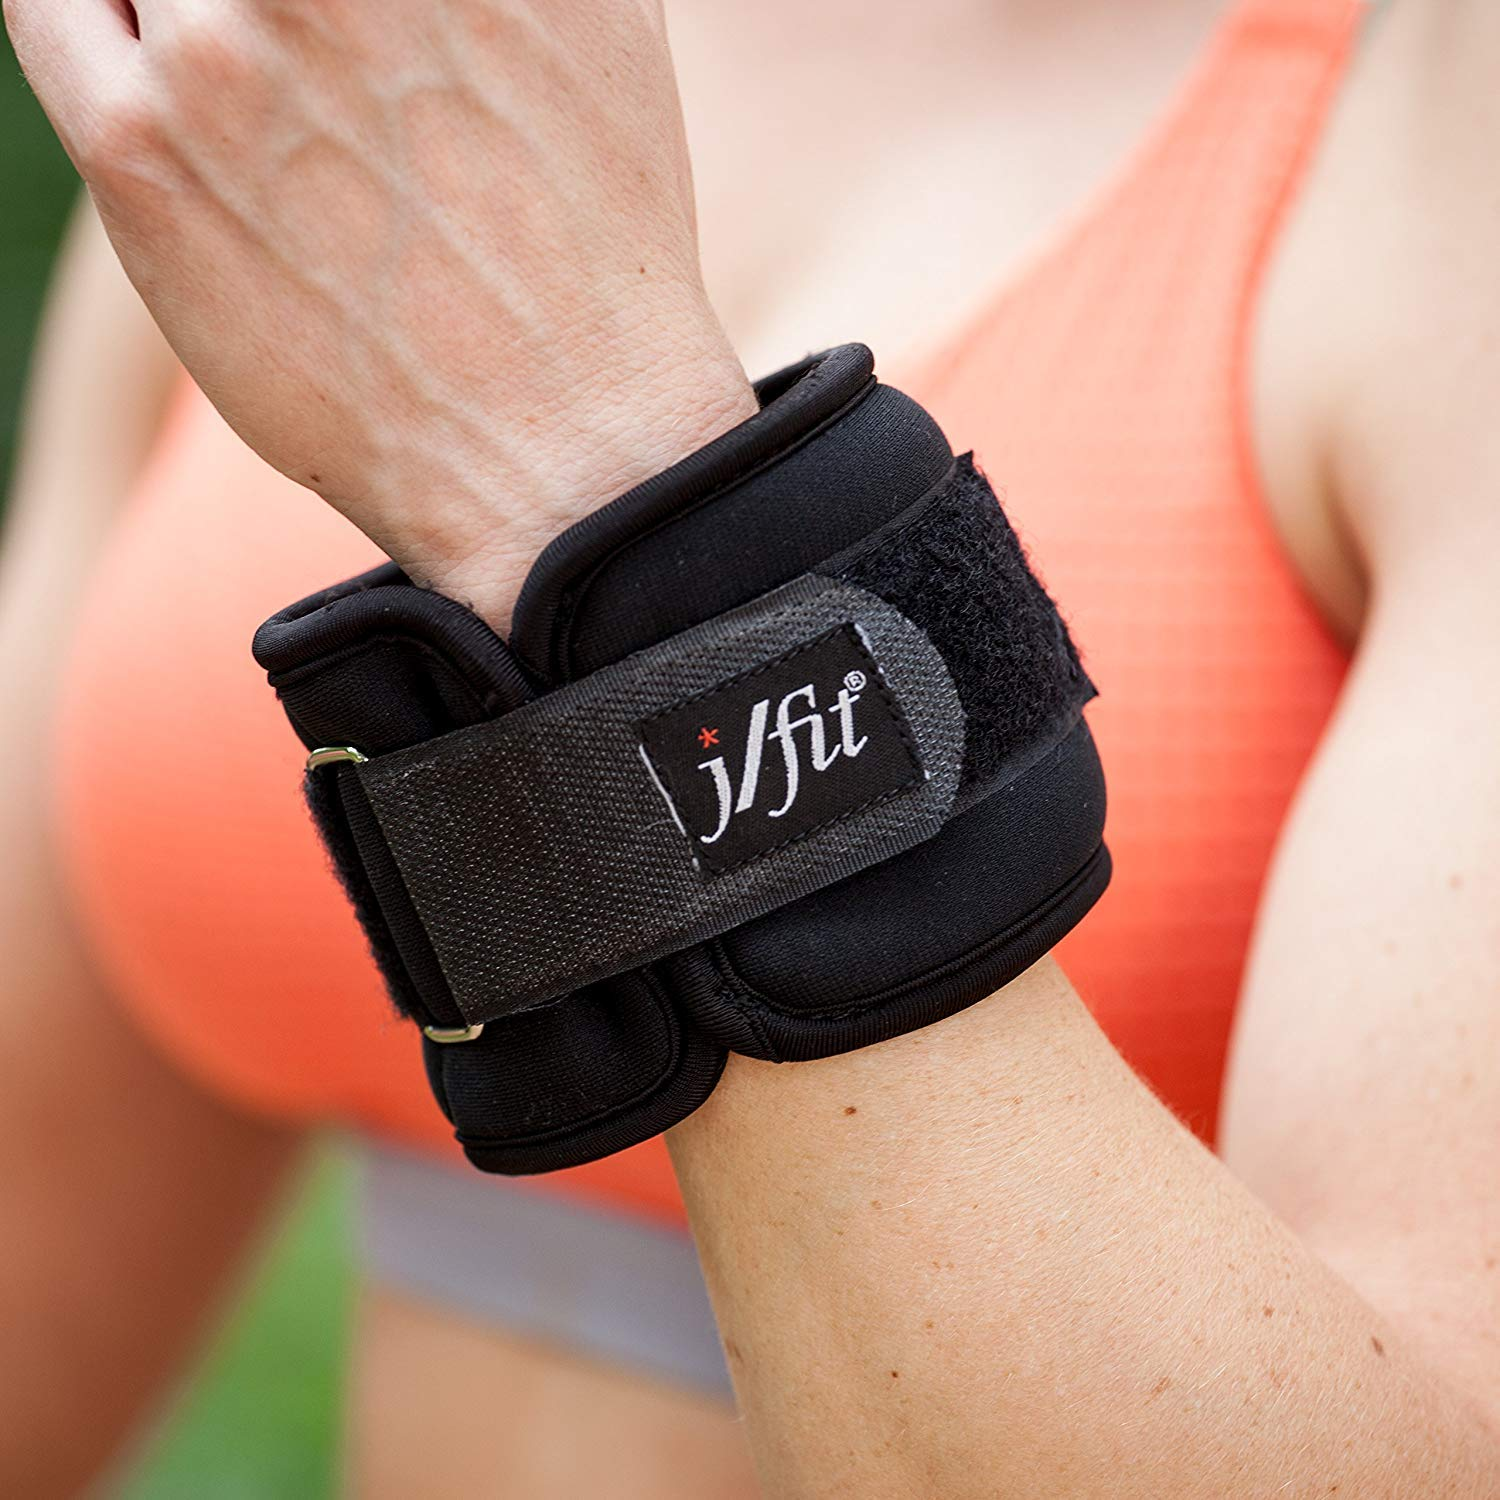 j//fit Adjustable Wrist /& Ankle Weights